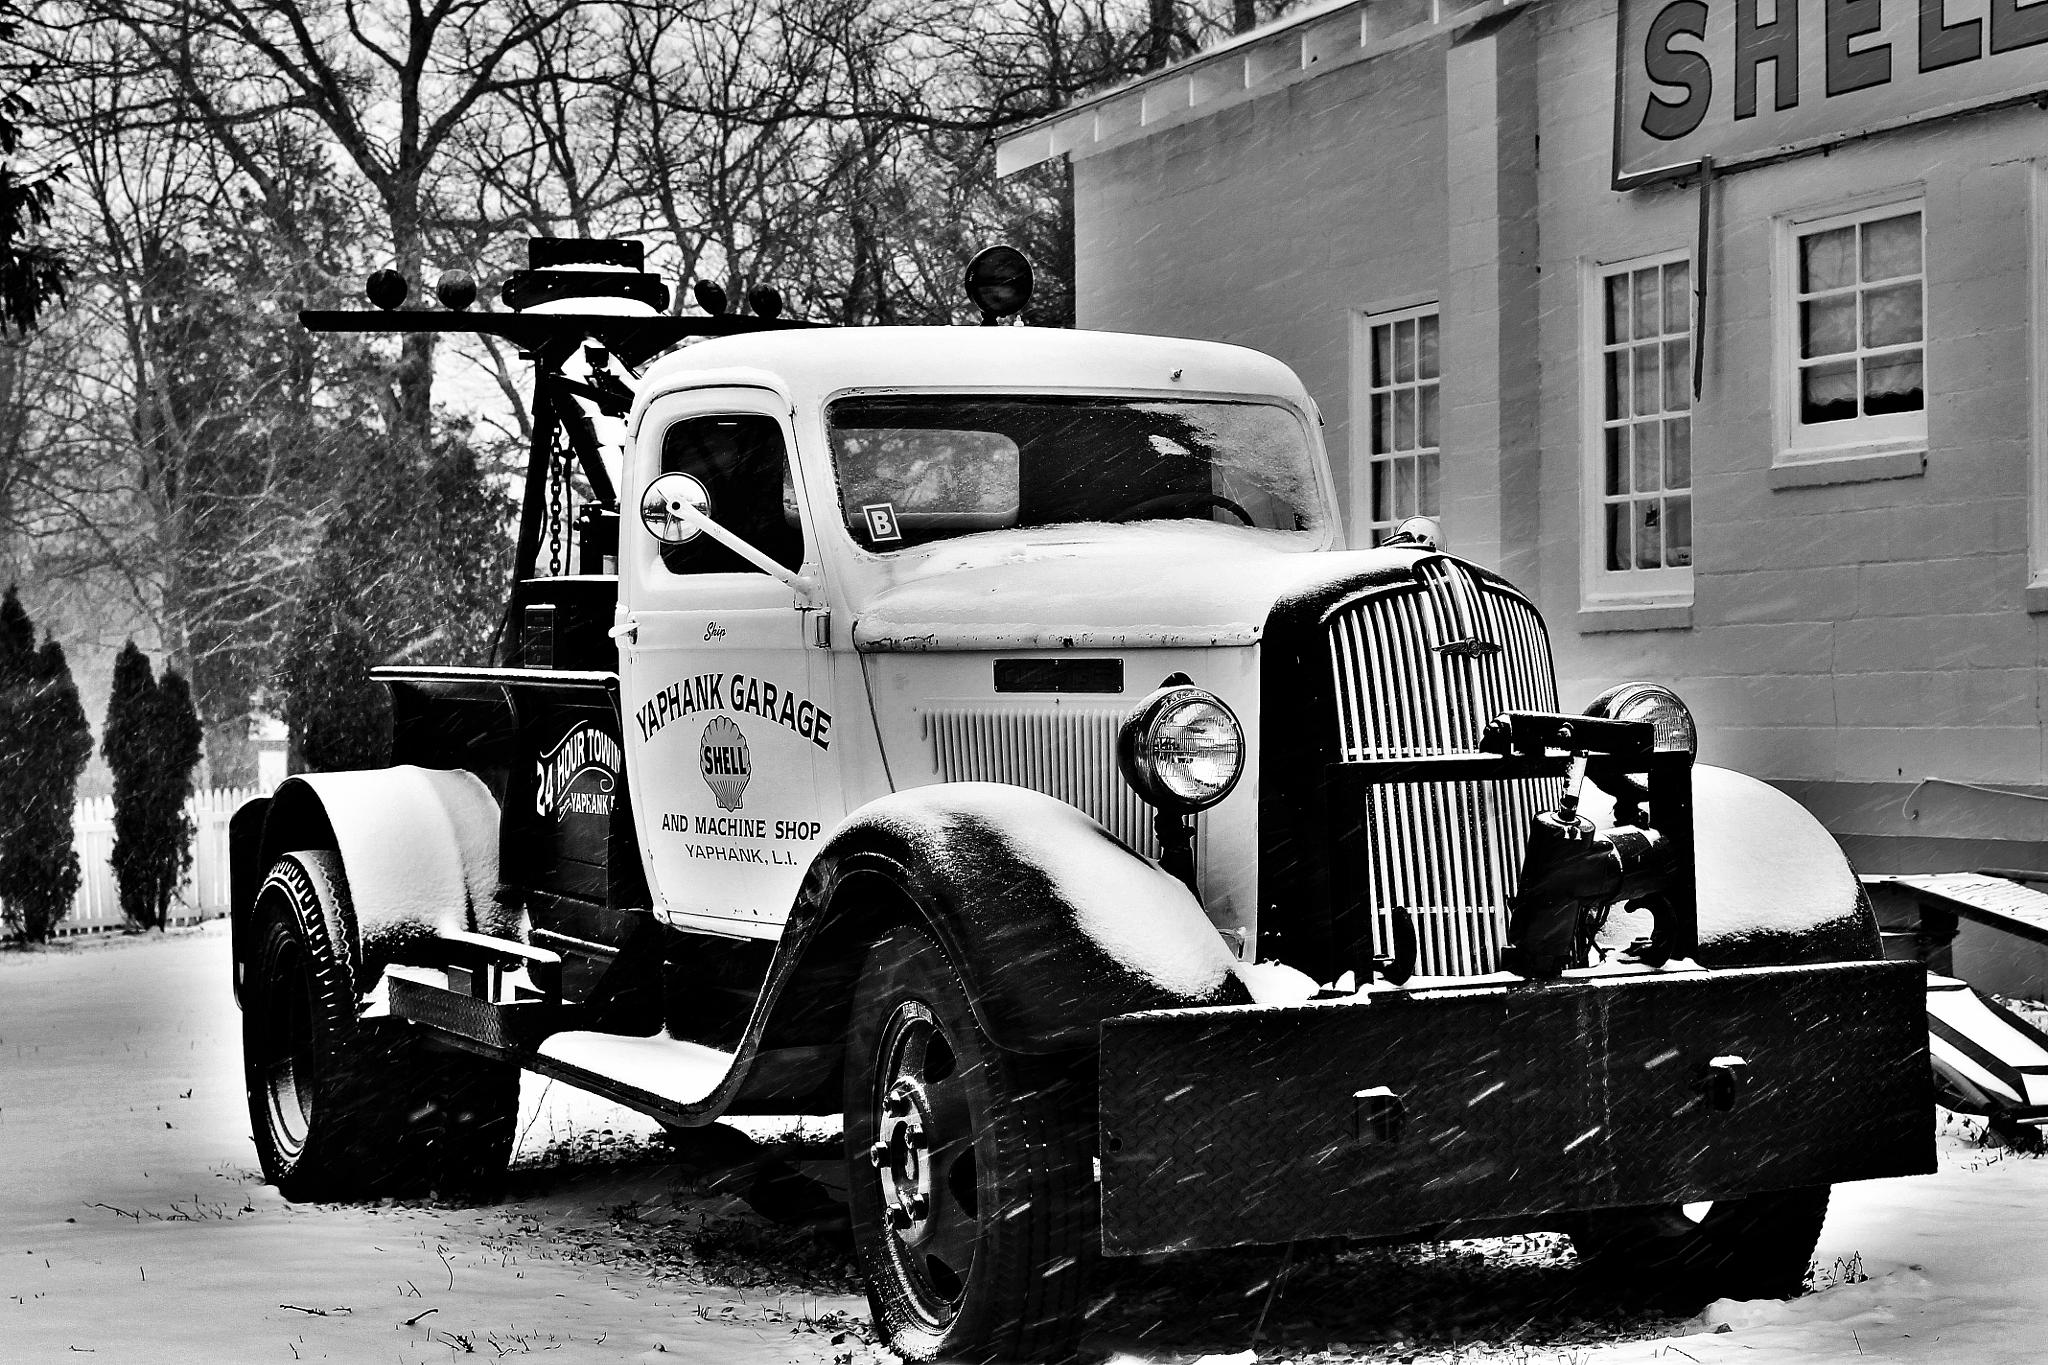 Vintage Tow Truck by A Summer's Smile